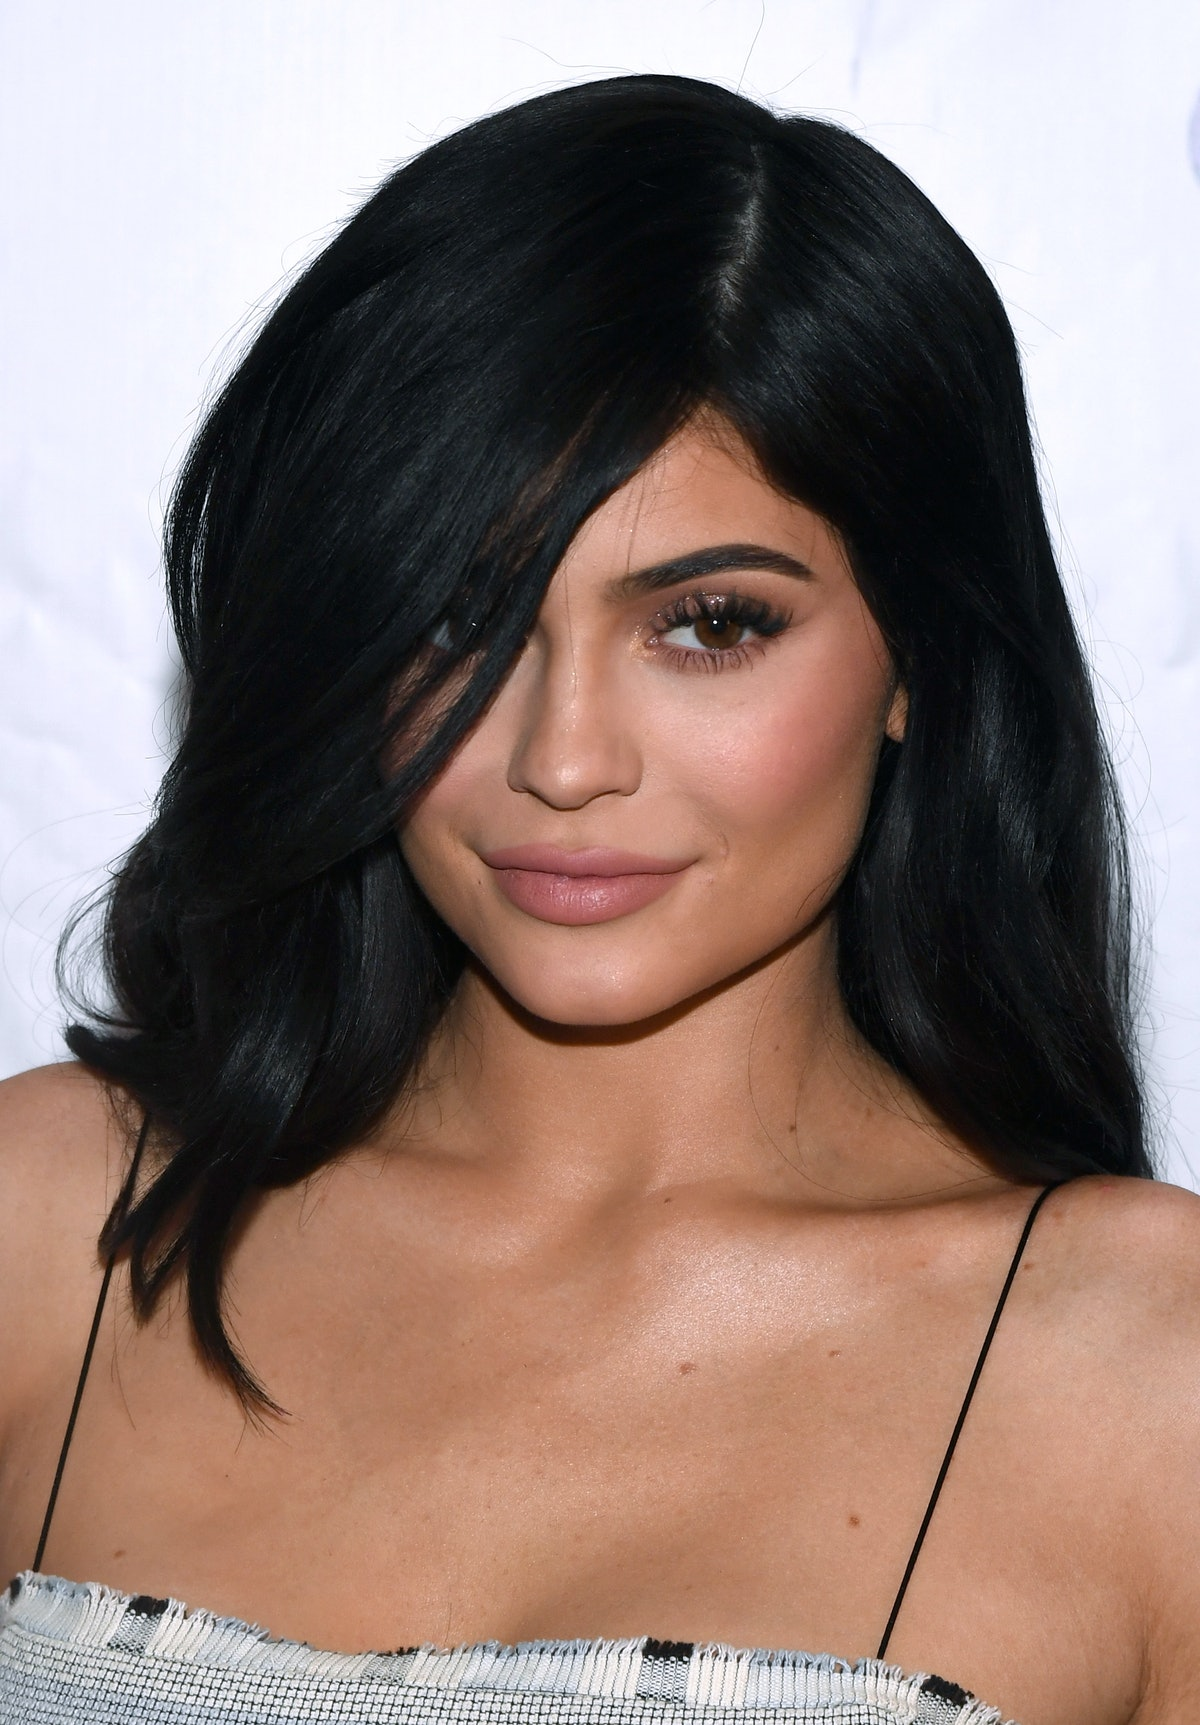 Kylie Jenner's Comments About Having More Kids Pretty Much Settles Those Pregnancy Rumors